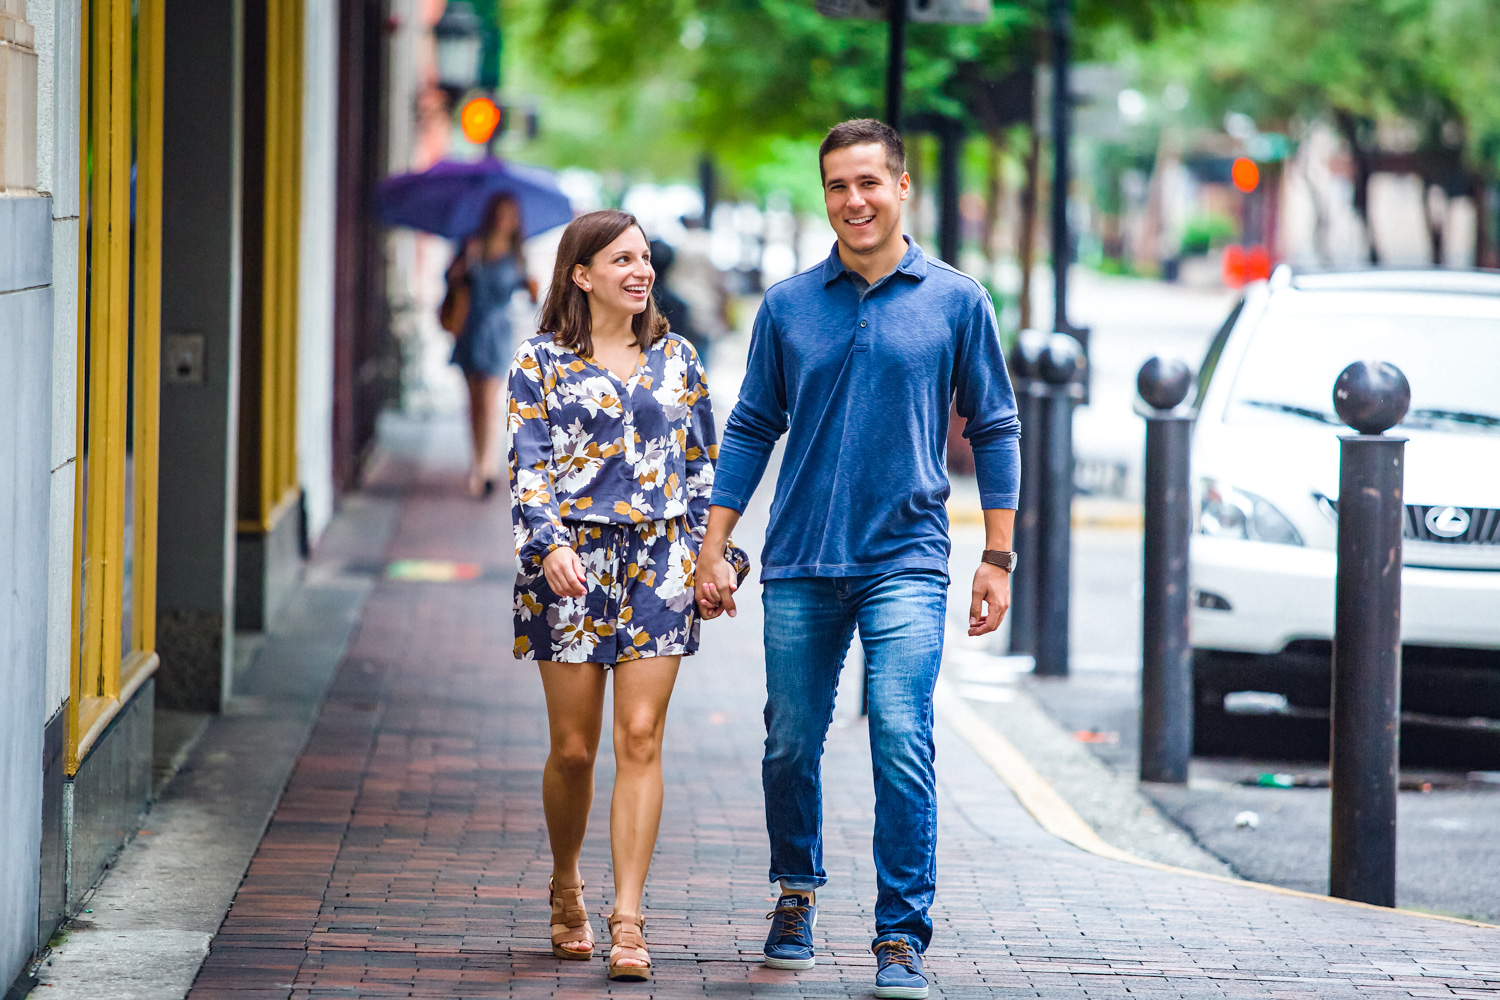 22 Oct 15Allie + David - Church Street Downtown orlando walkabout engagement - organic wedding photography 17.jpg